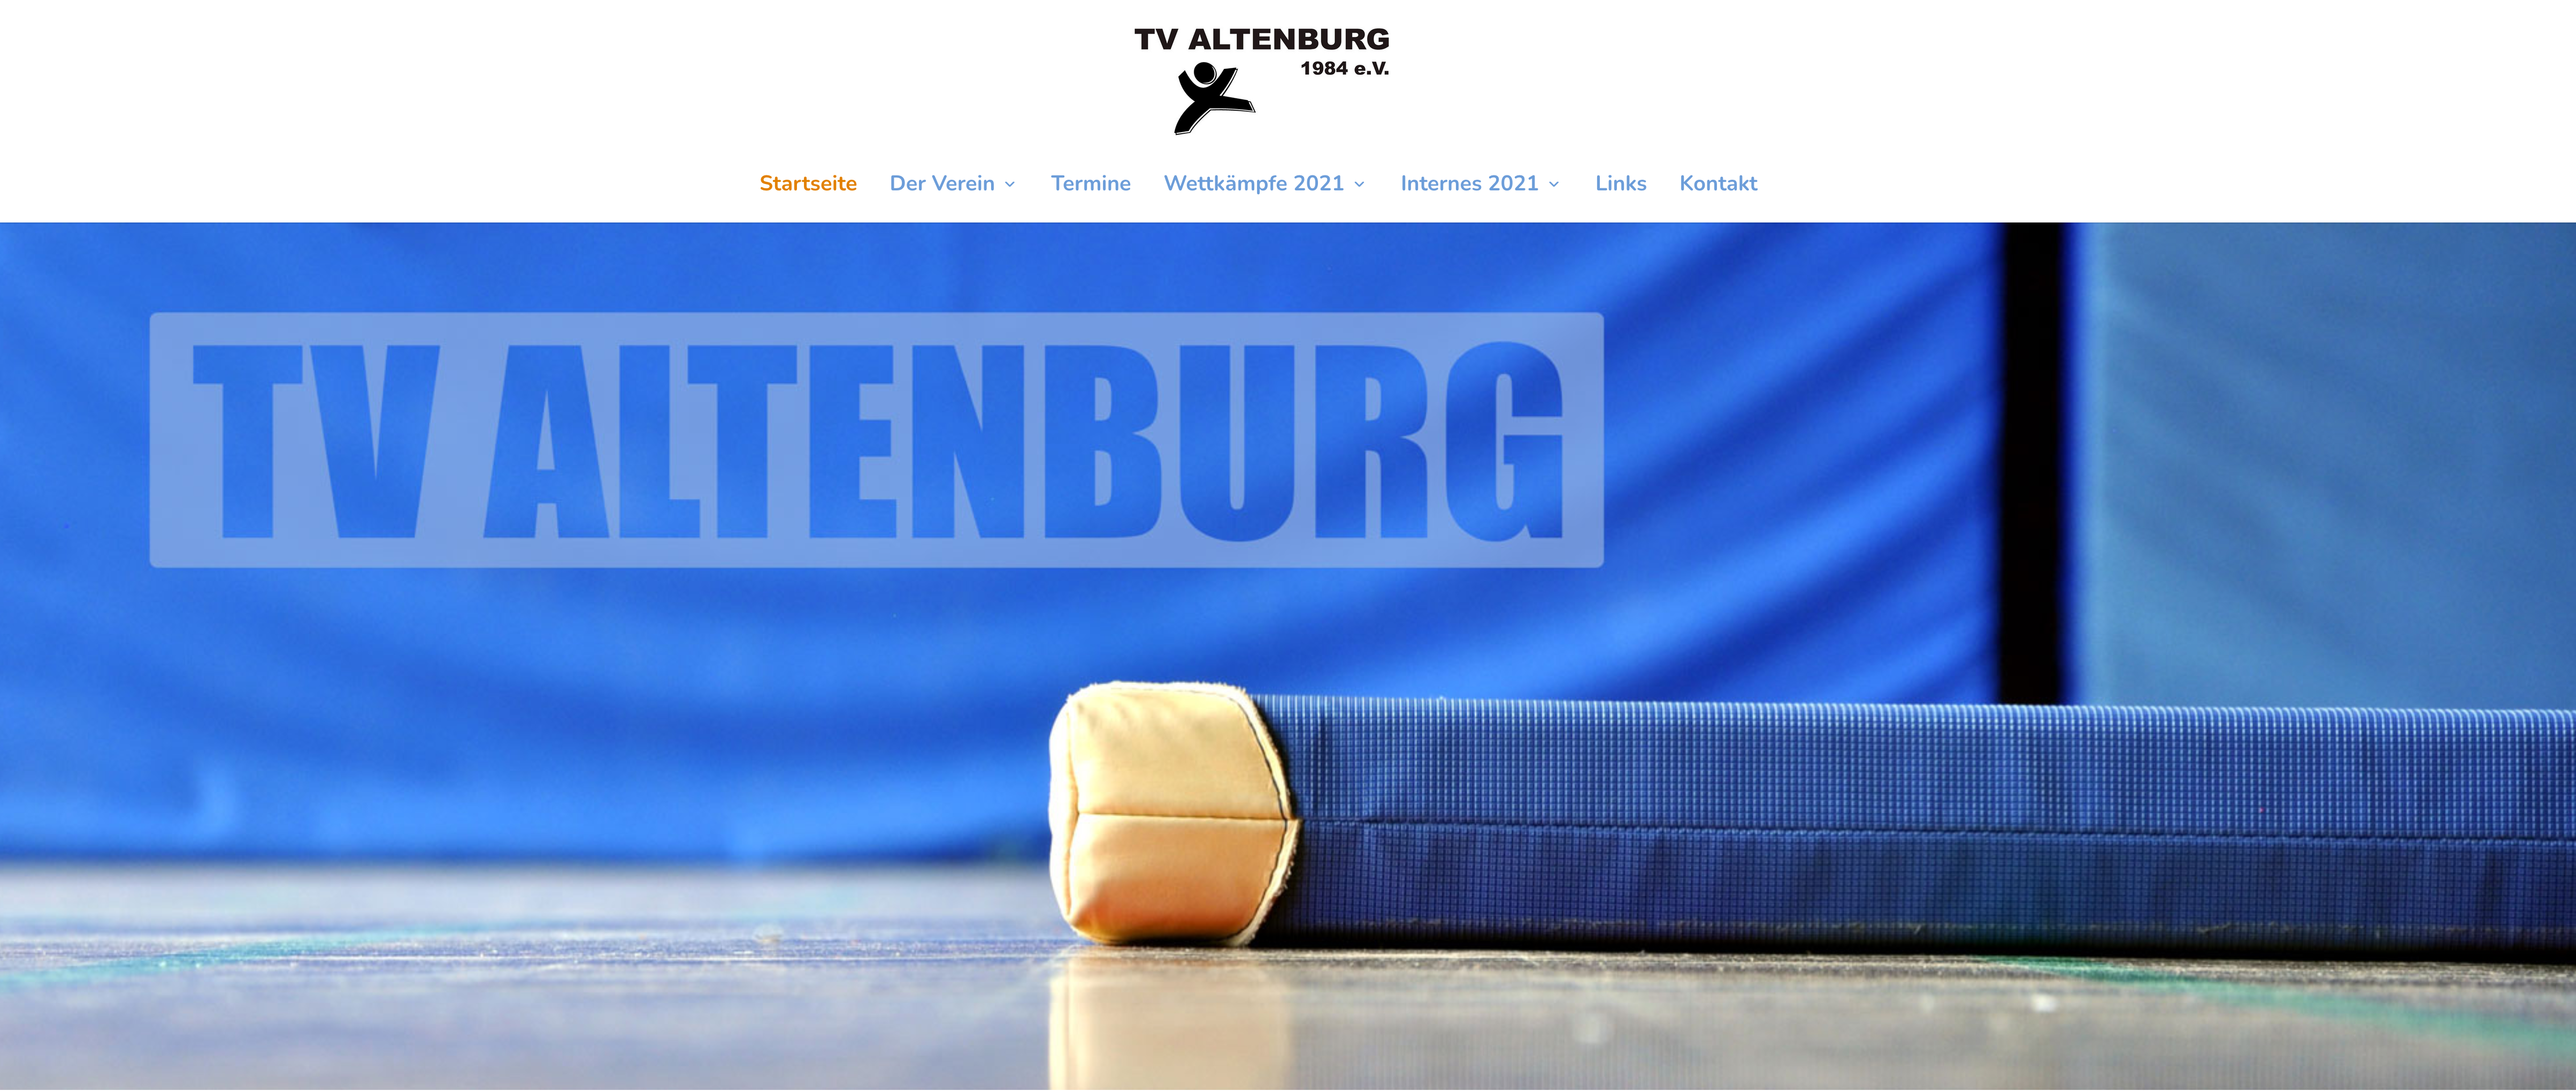 Turnverein Altenburg